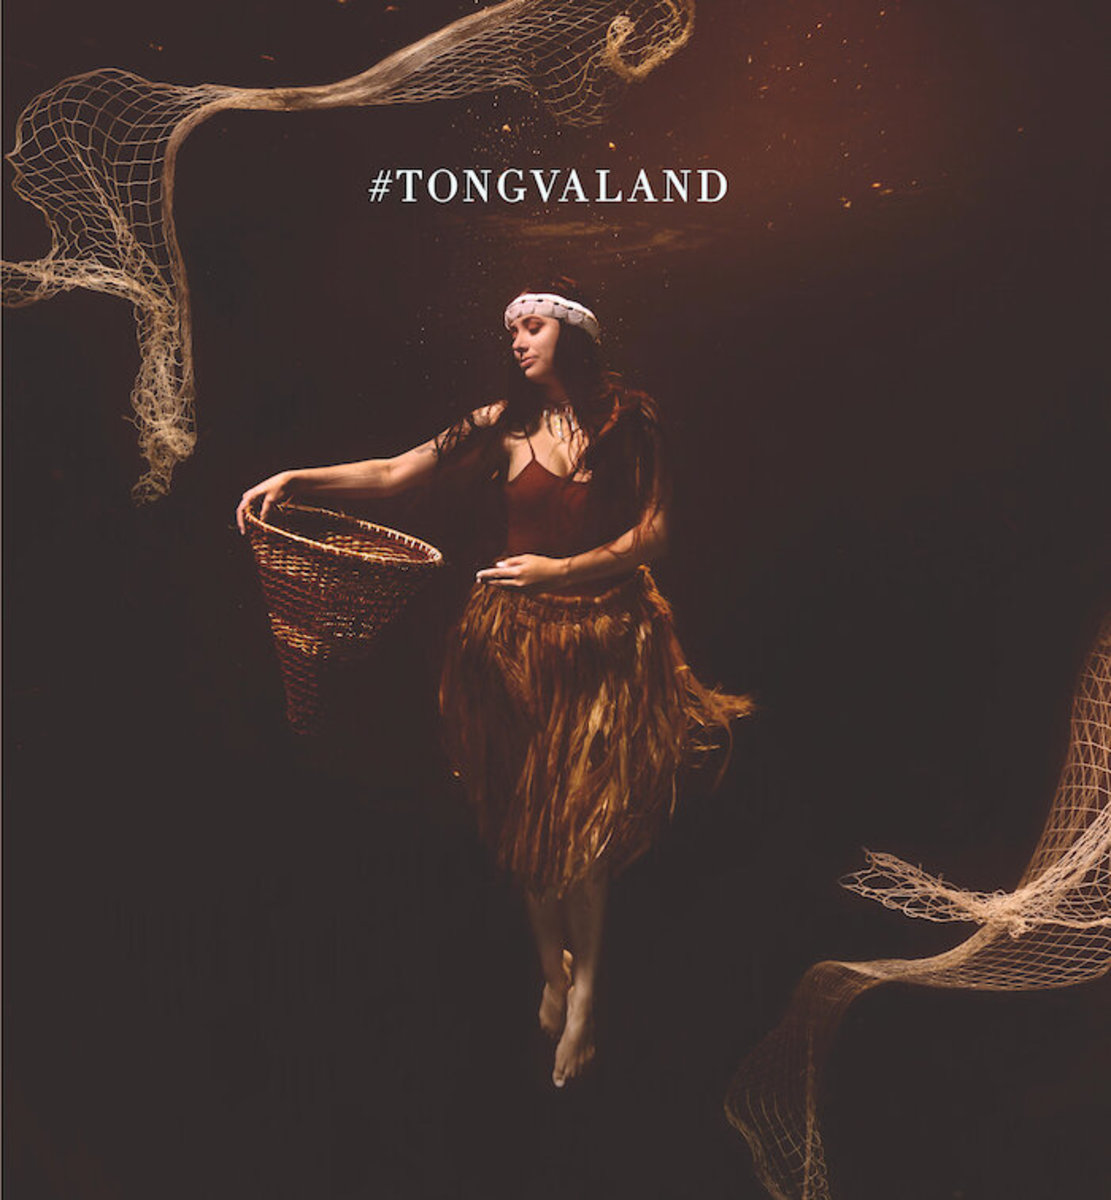 """This work by Indigenous artist Cara Romero, """"Weshoyot,"""" is part of an installation of art billboards in Los Angeles drawing attention to the Tongva people. The billboard features an underwater photo of artist Weshoyot Alvitre, Tongva, who contributed another billboard for the project. The """"Tongvaland"""" display, organized by Romero, Chemehuevi, with a grant from the NDN Collective, features six artists on seven billboards. The billboards will be displayed Aug. 28-Sept. 2, 2021, with some remaining up until Sept. 29. (Photo courtesy of Cara Romero)"""